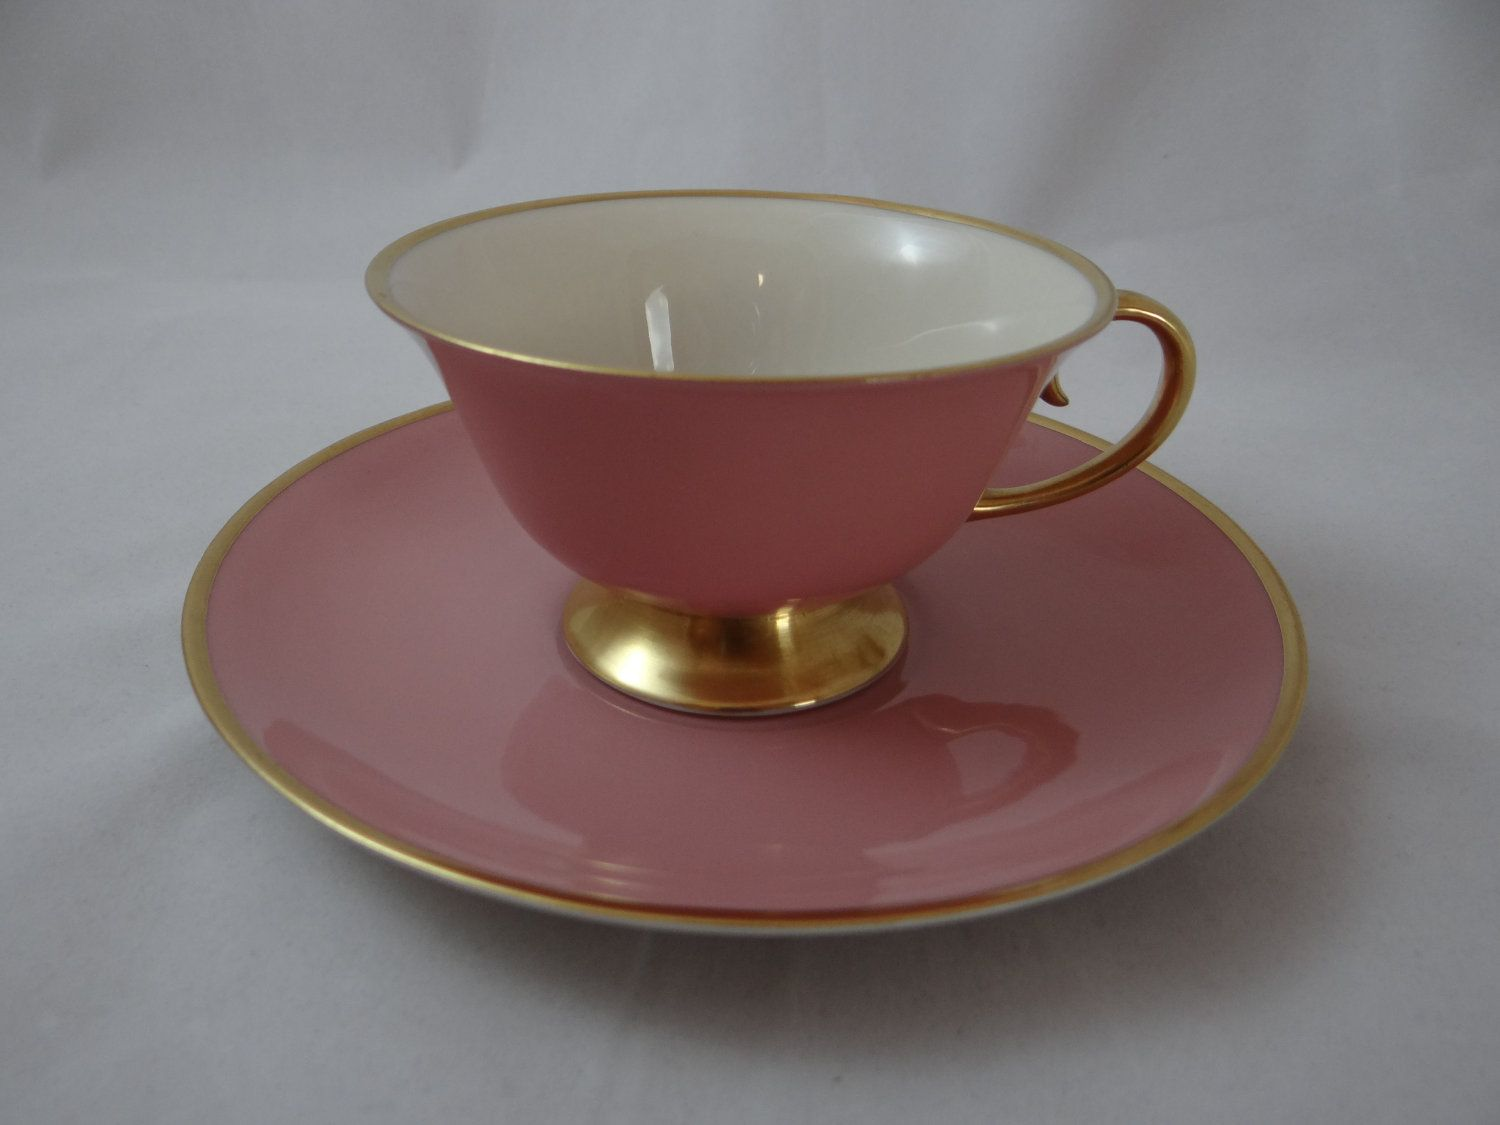 Vintage Flintridge Pink Teacup and Saucer c1960s